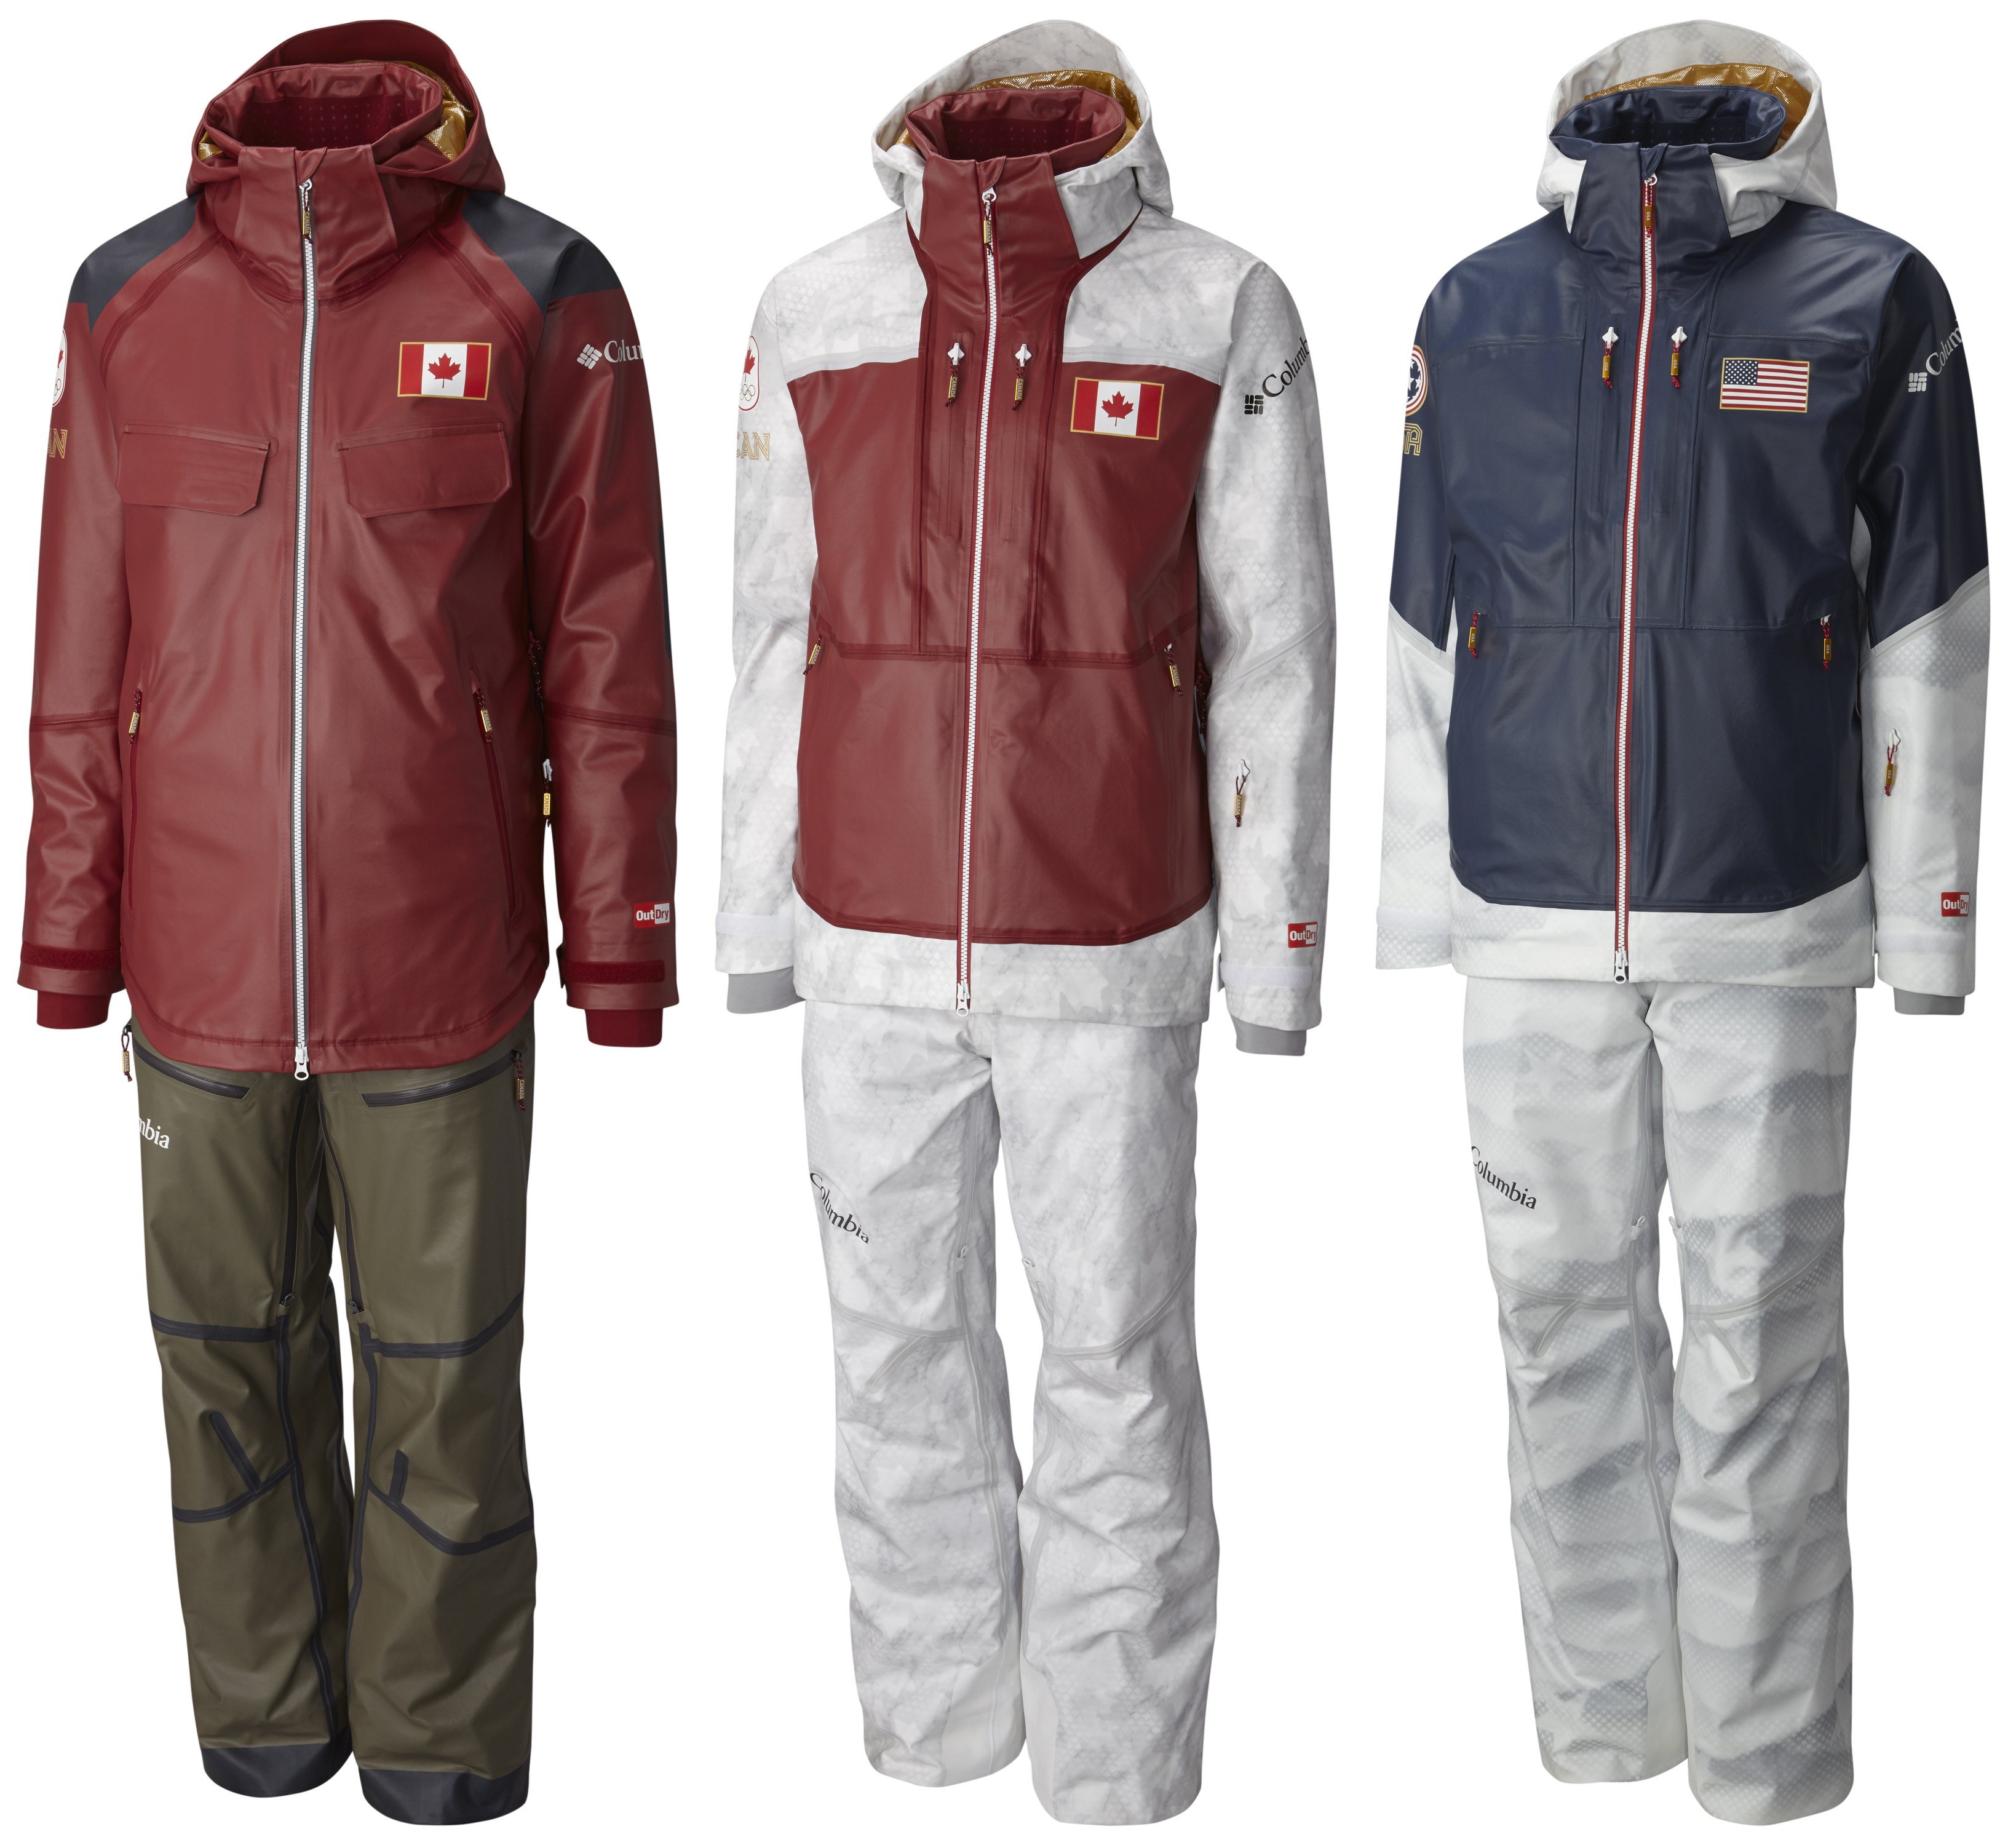 4067b4986 Lined With Gold: Columbia Unveils Olympic Ski Uniforms   GearJunkie